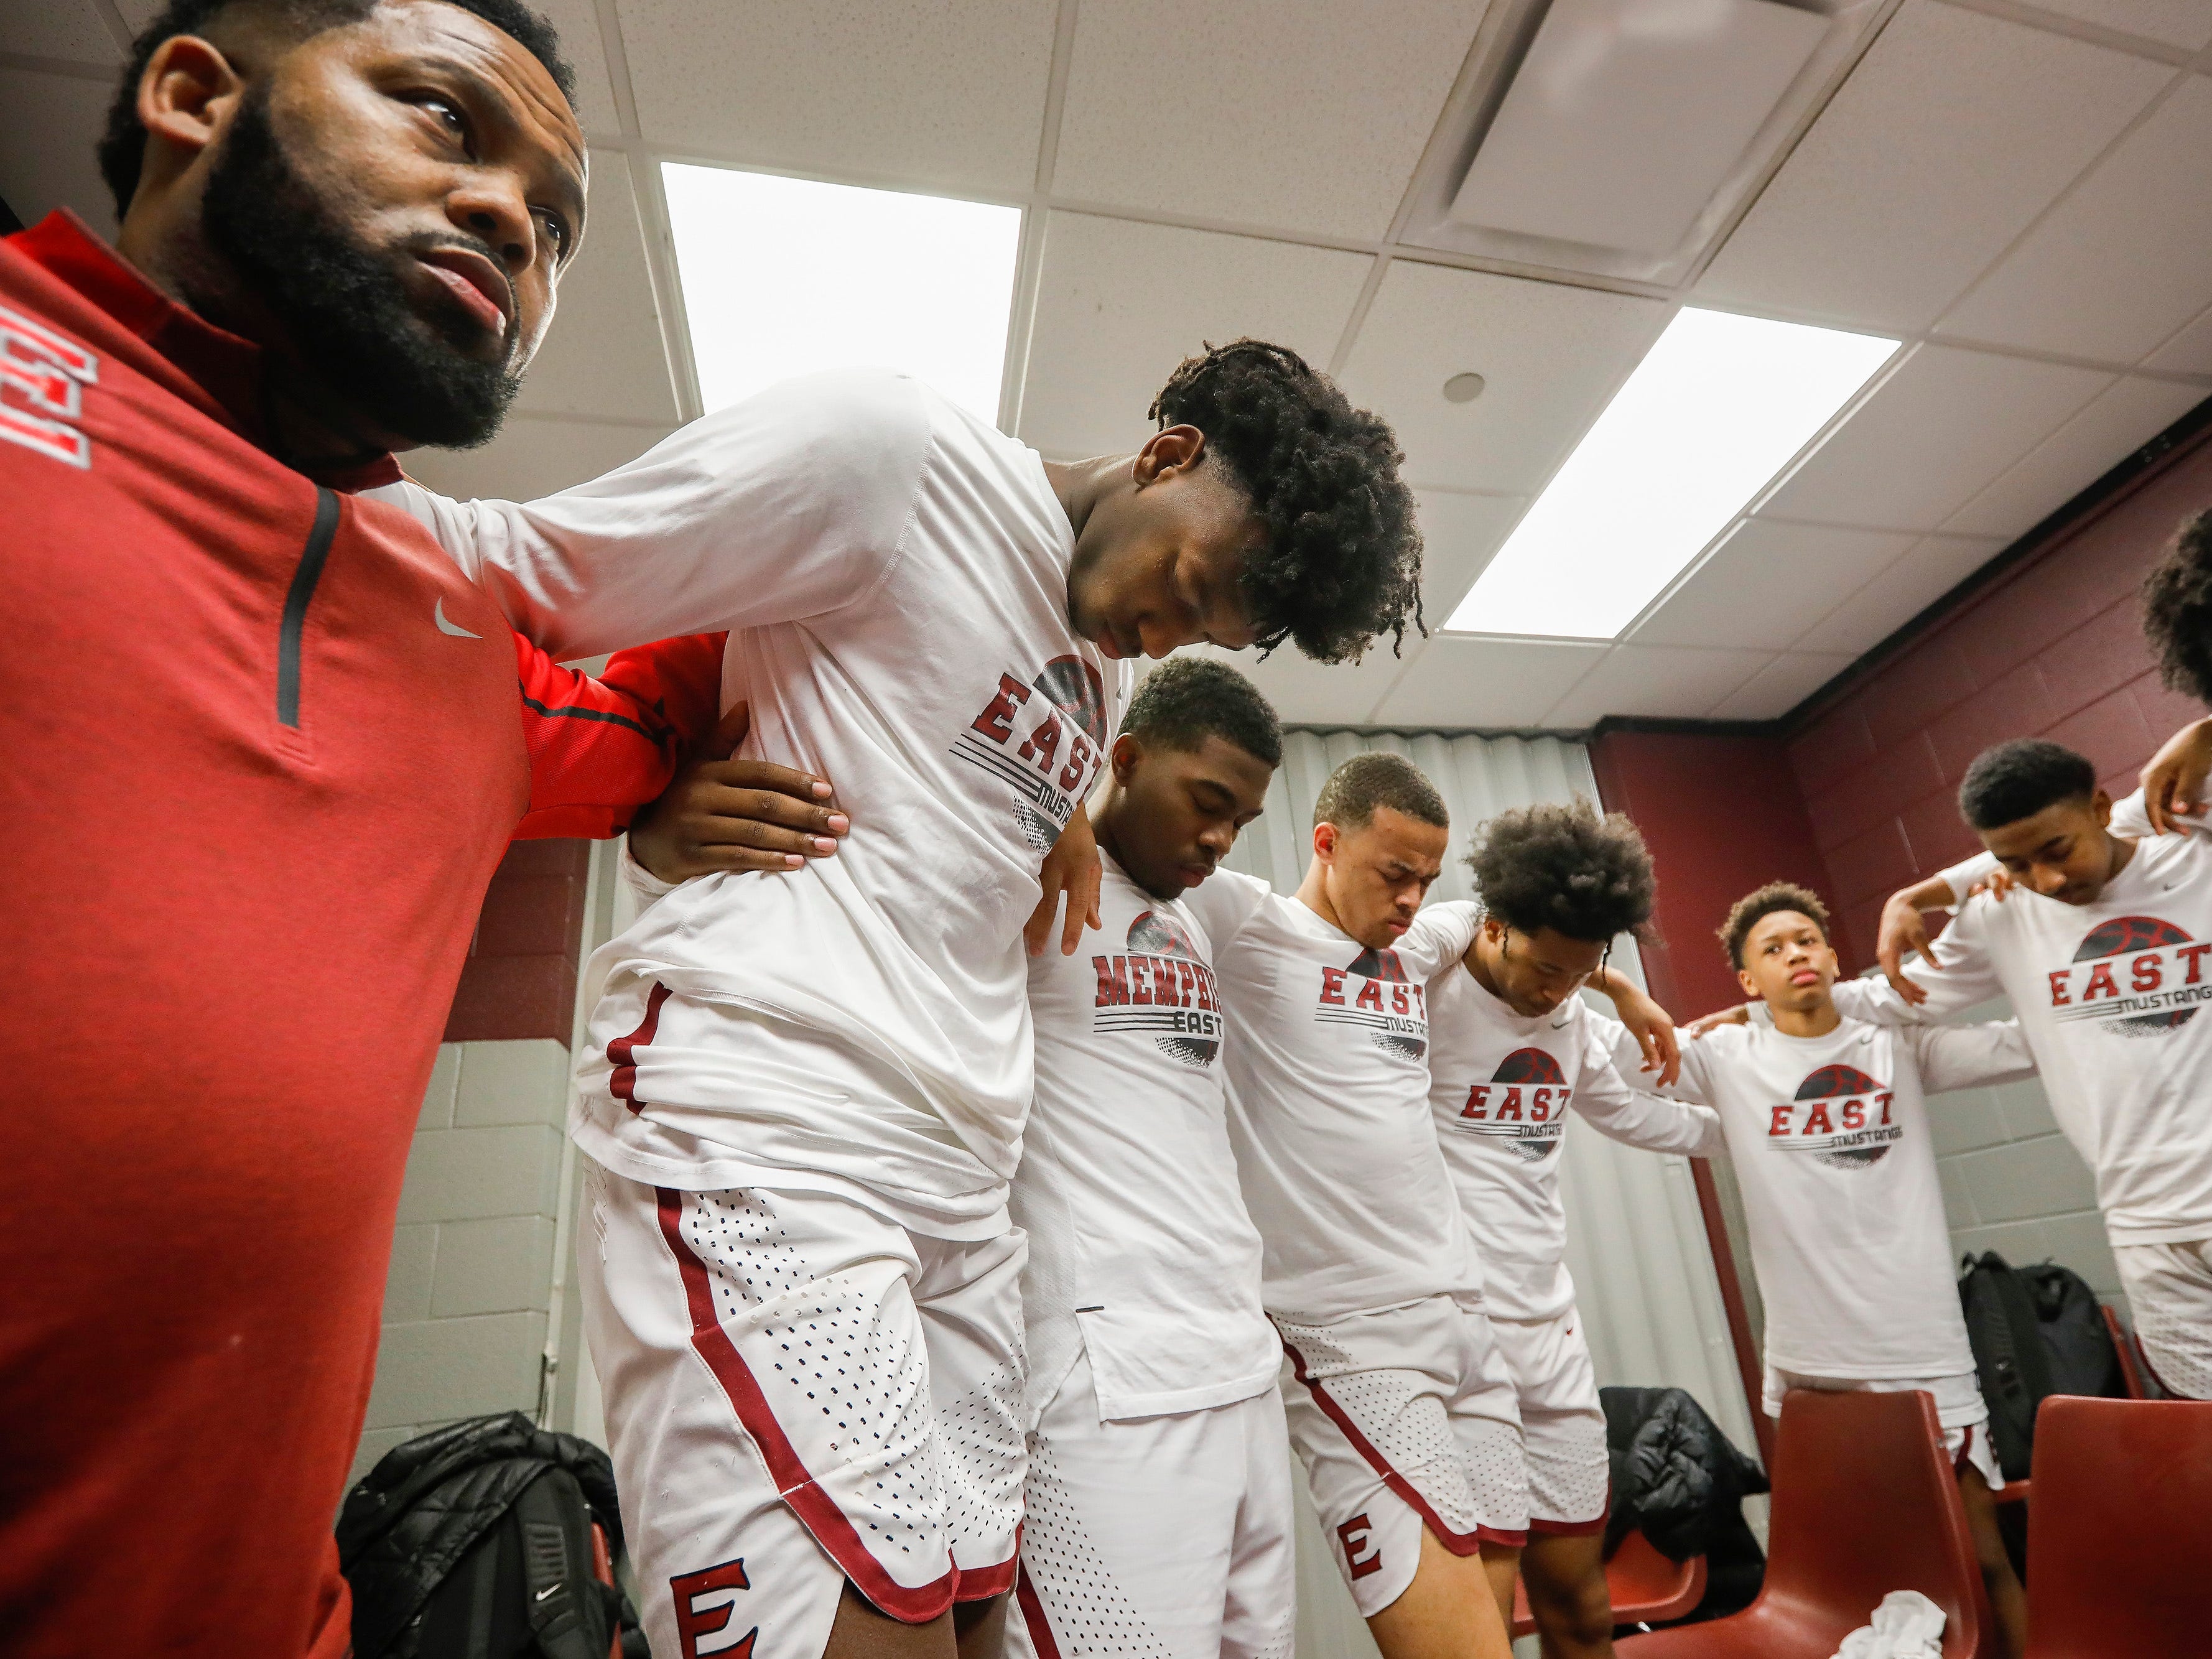 James Wiseman, center left, of Memphis East High School, bows his head for a prayer in the locker room at JQH Arena for the Bass Pro Shops Tournament of Champions on Thursday, Jan. 17, 2019.